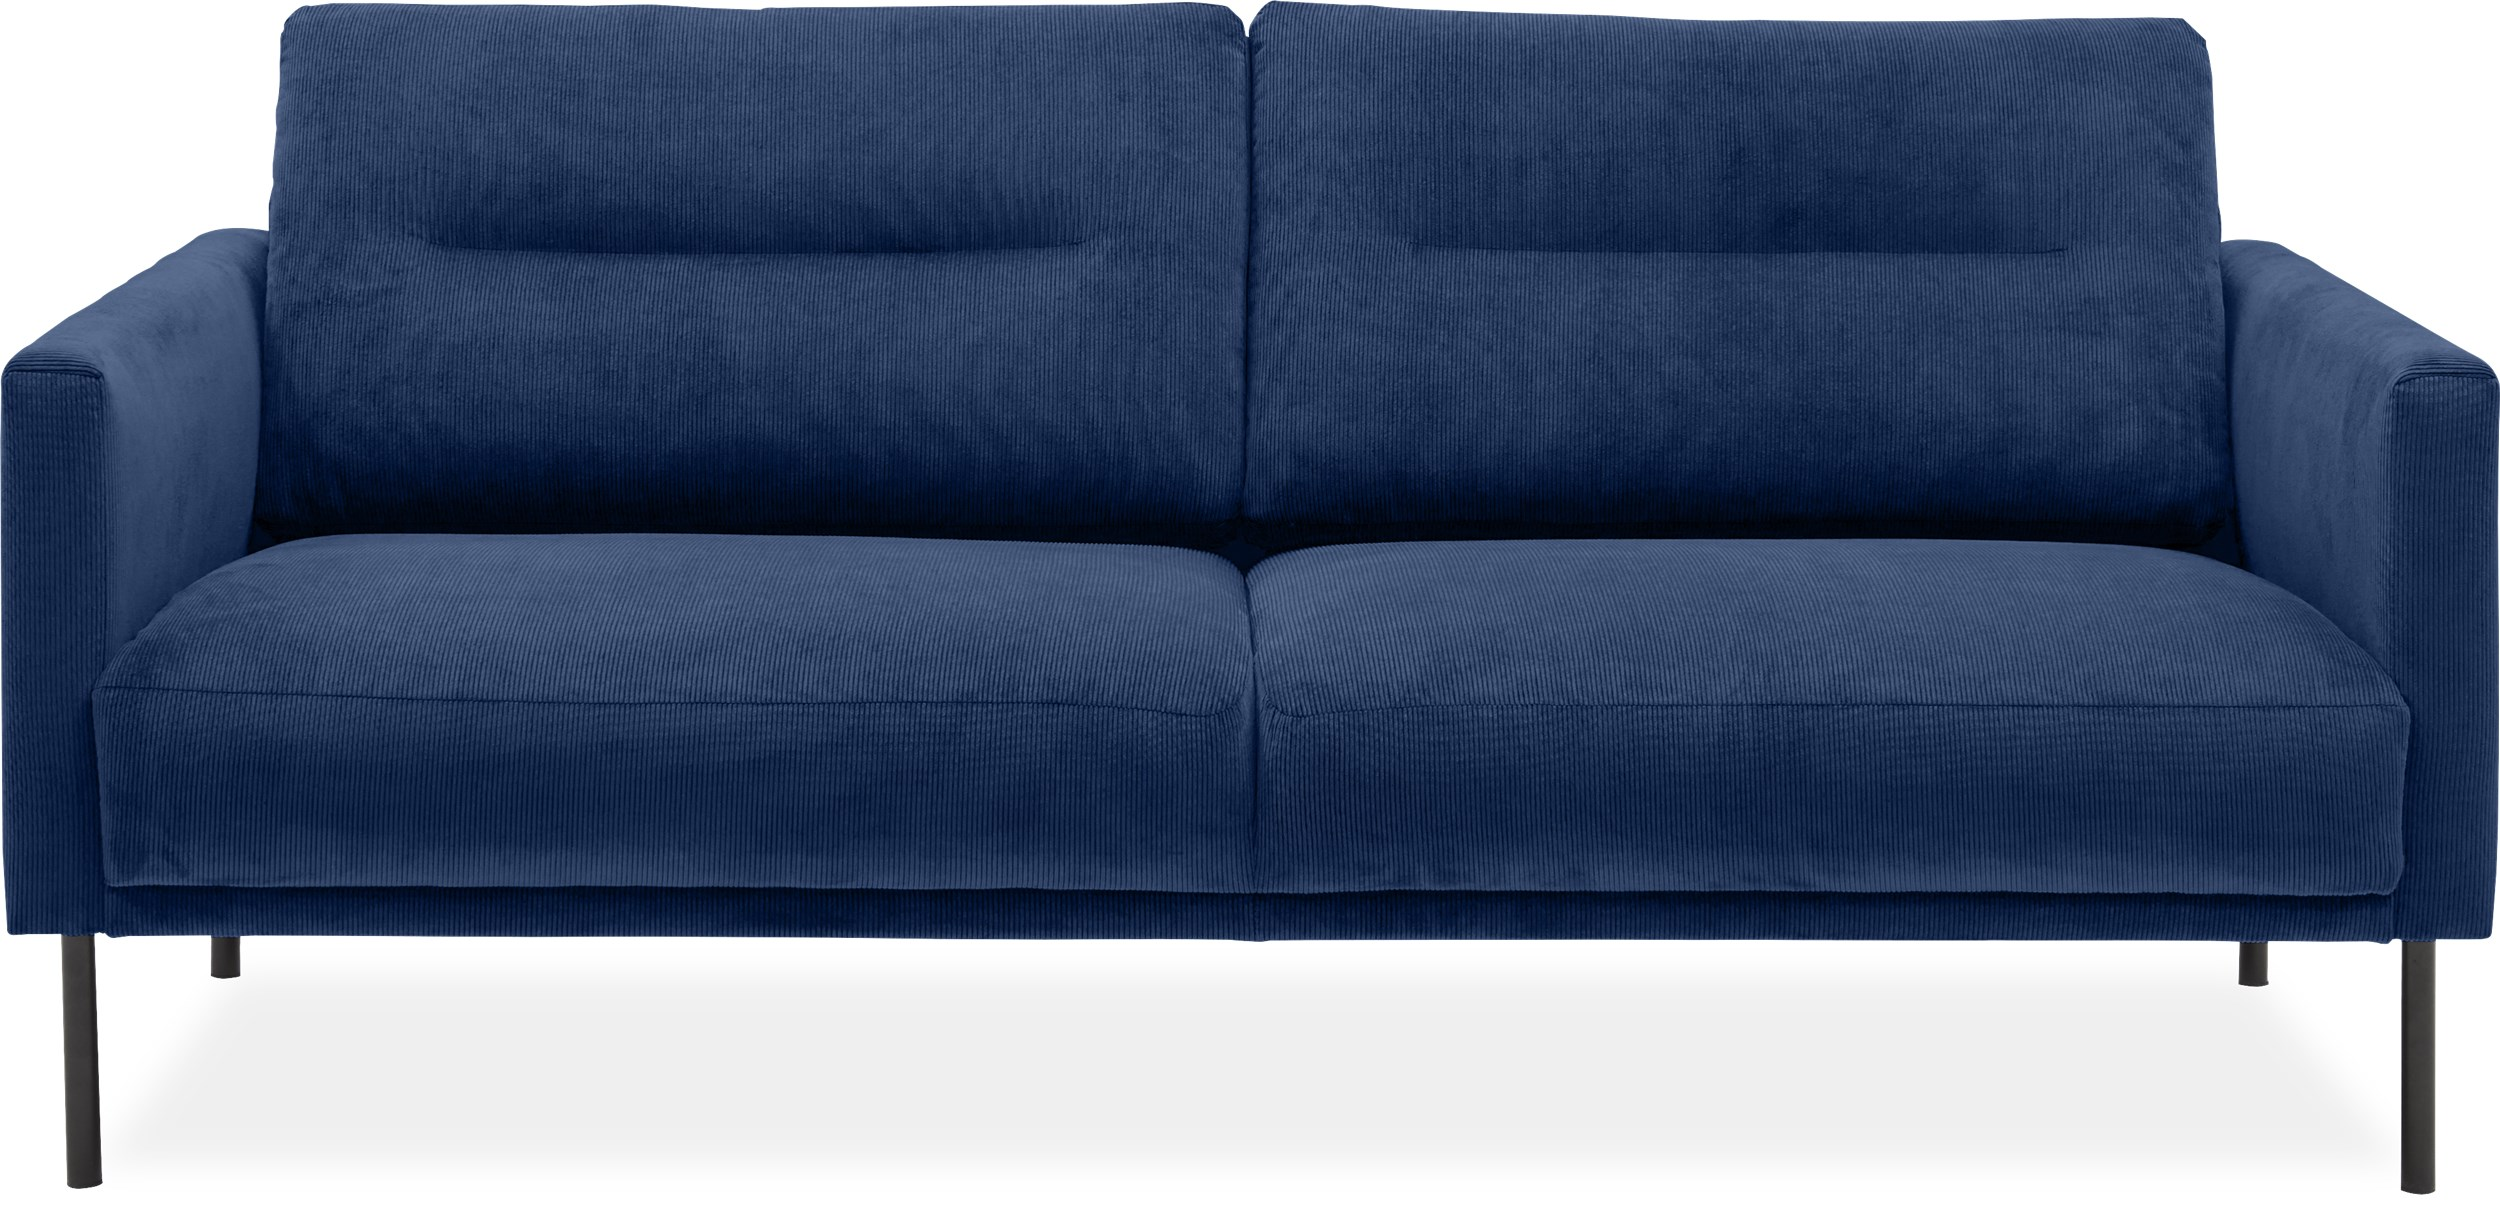 Larvik 2½ pers. Sofa - Wave 220 Royal blue stof og ben i sortlakeret metal